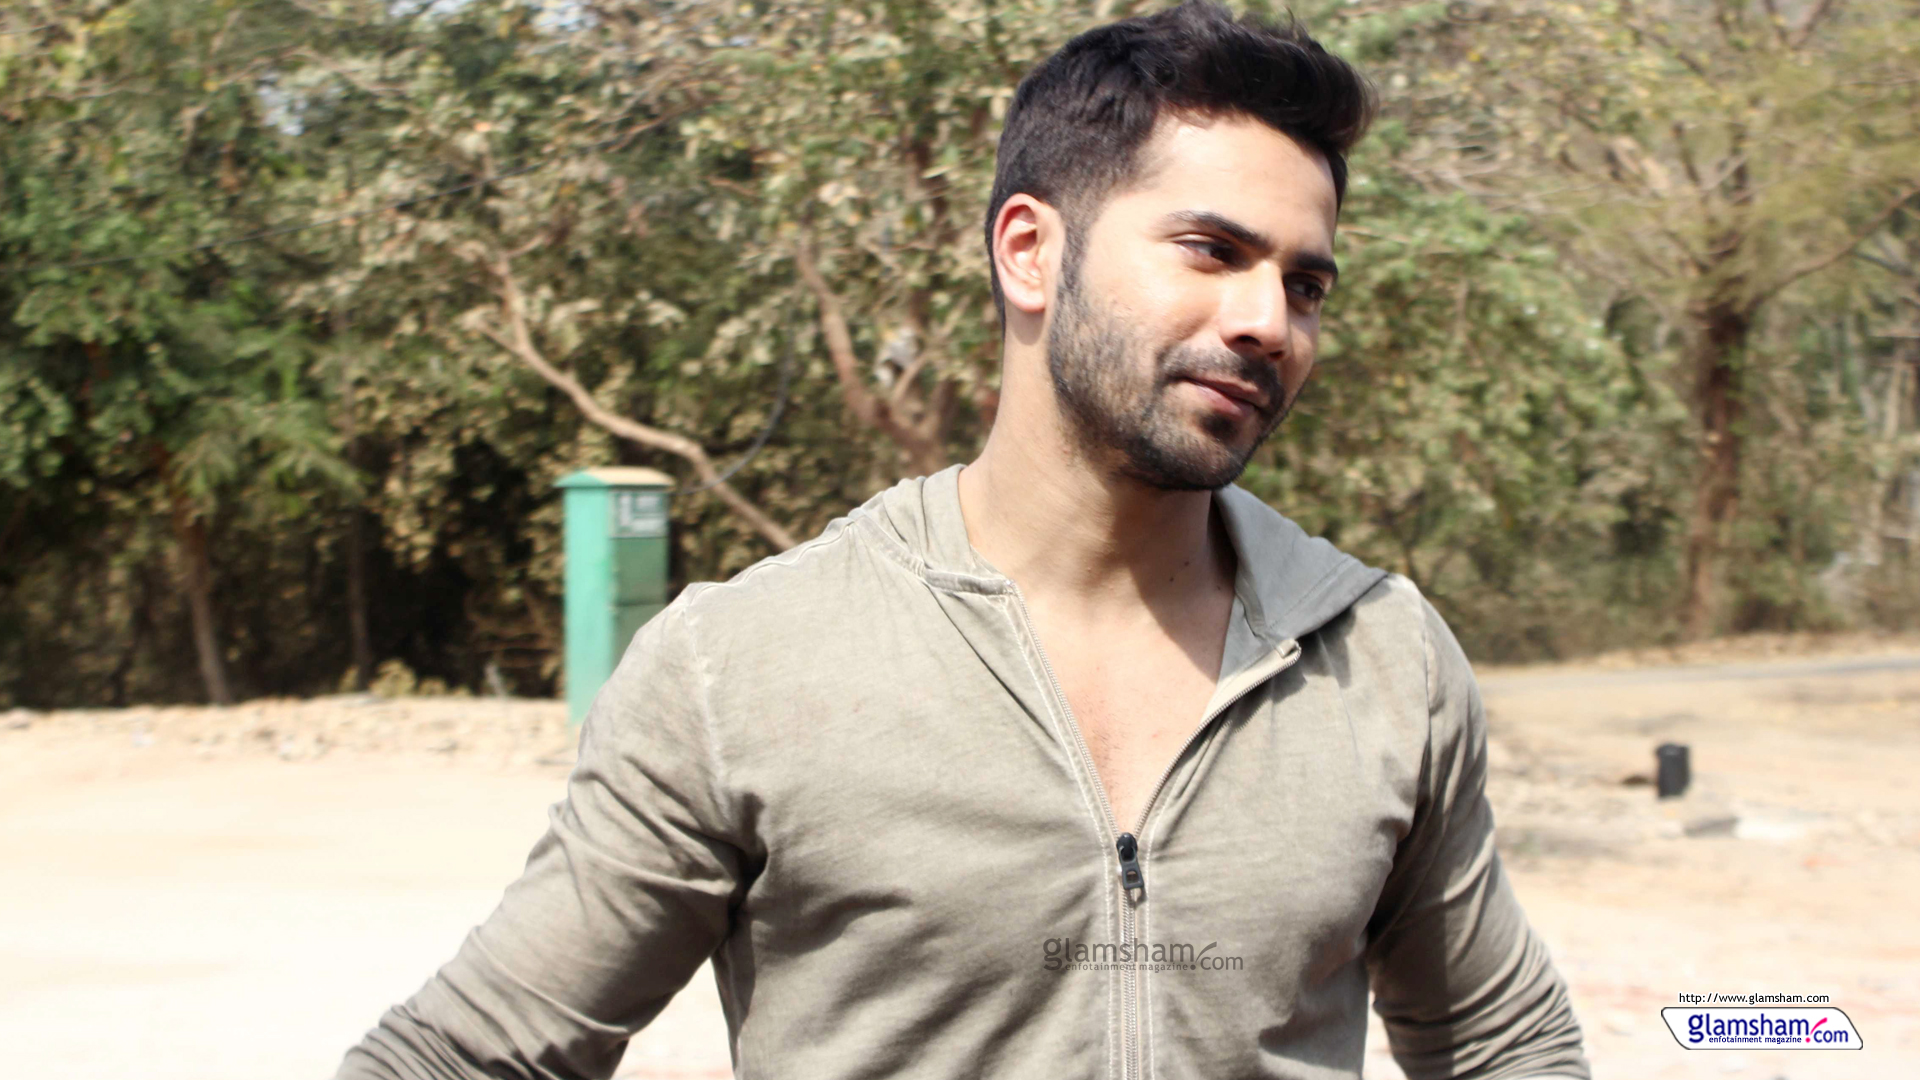 New Latest Photos Of Varun Dhawan Hd Wallpapers Images Free 1920x1080